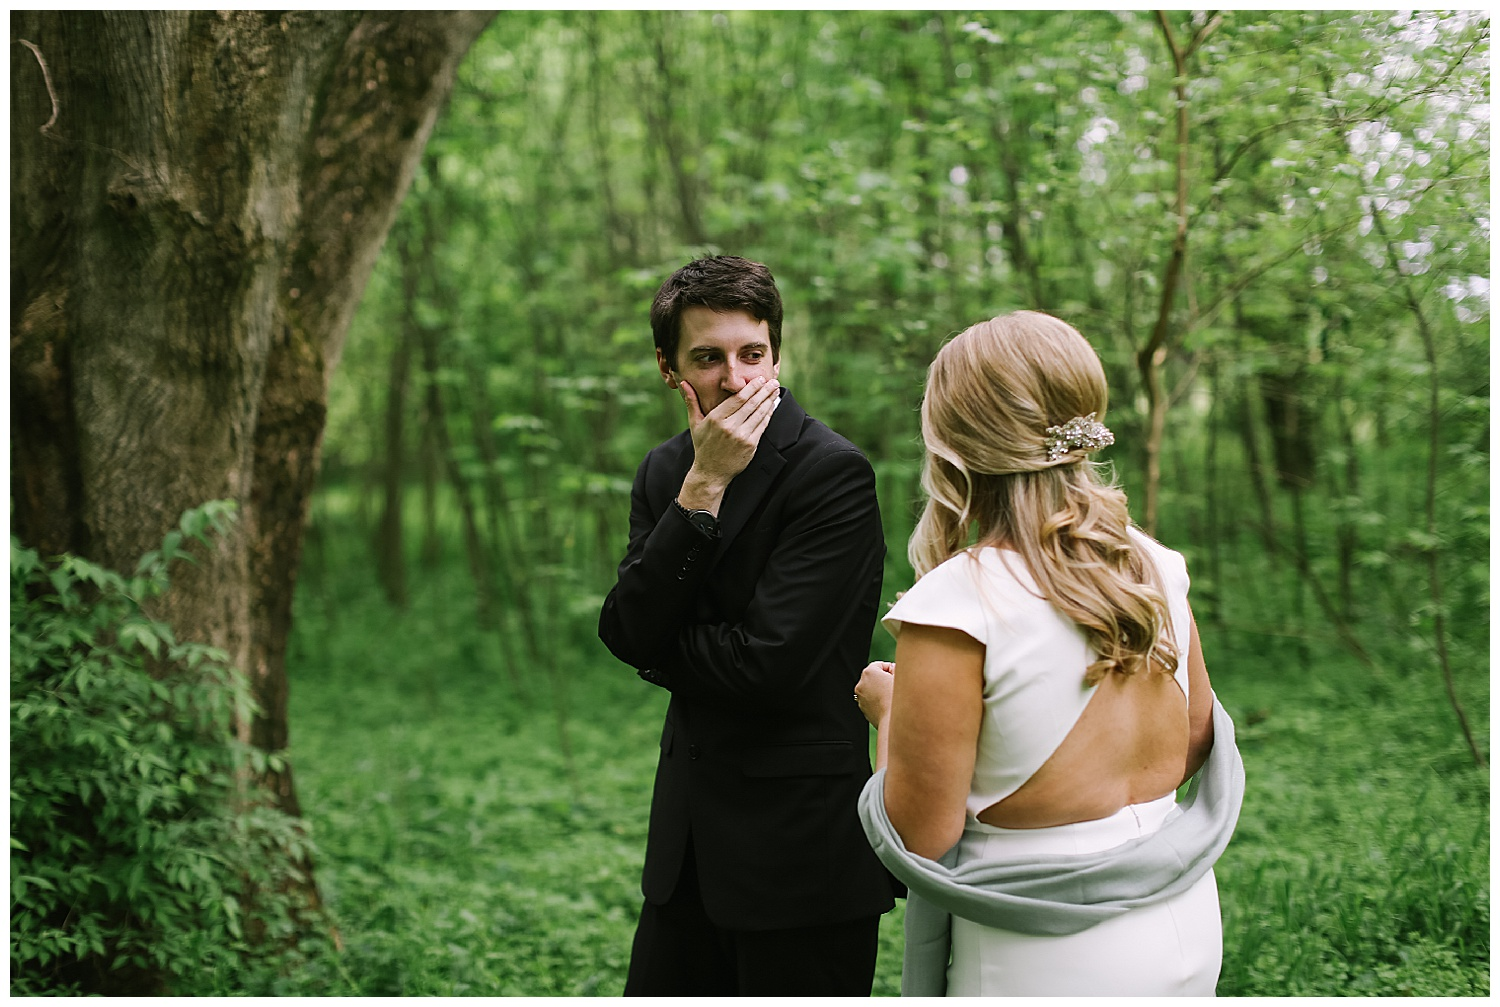 trent.and.kendra.photography.elopement.intimate.wedding-34.jpg